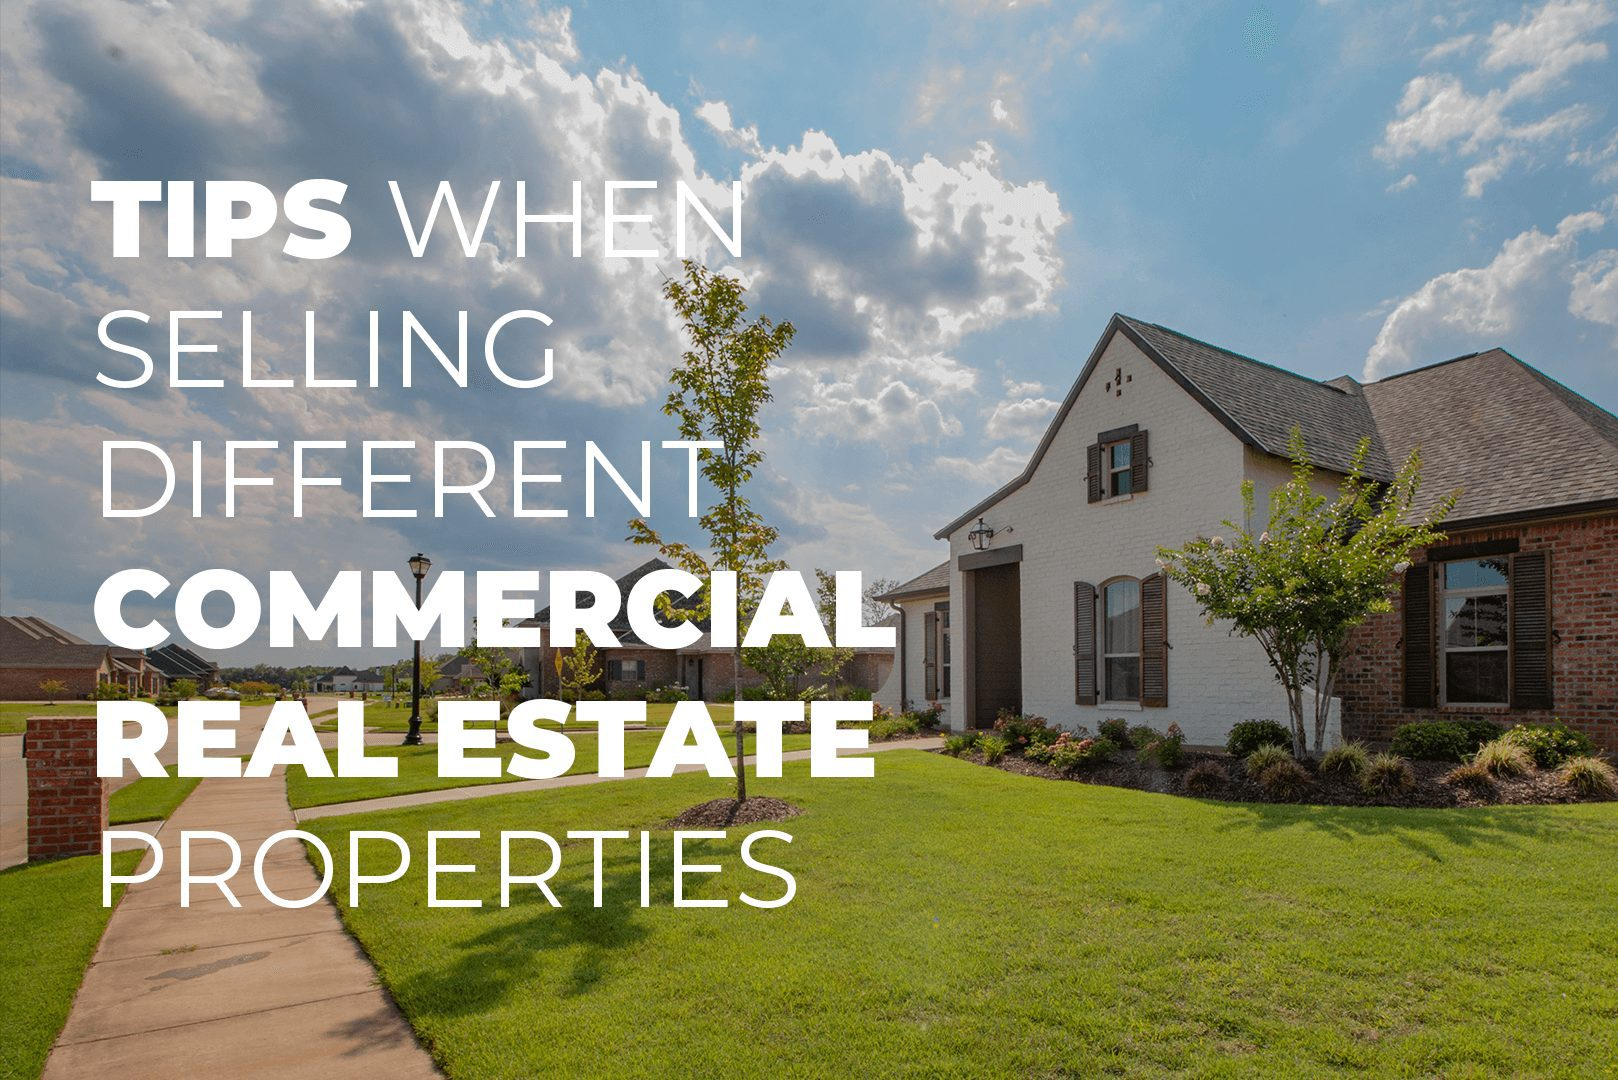 Tips When Selling Different Commercial Real Estate Properties